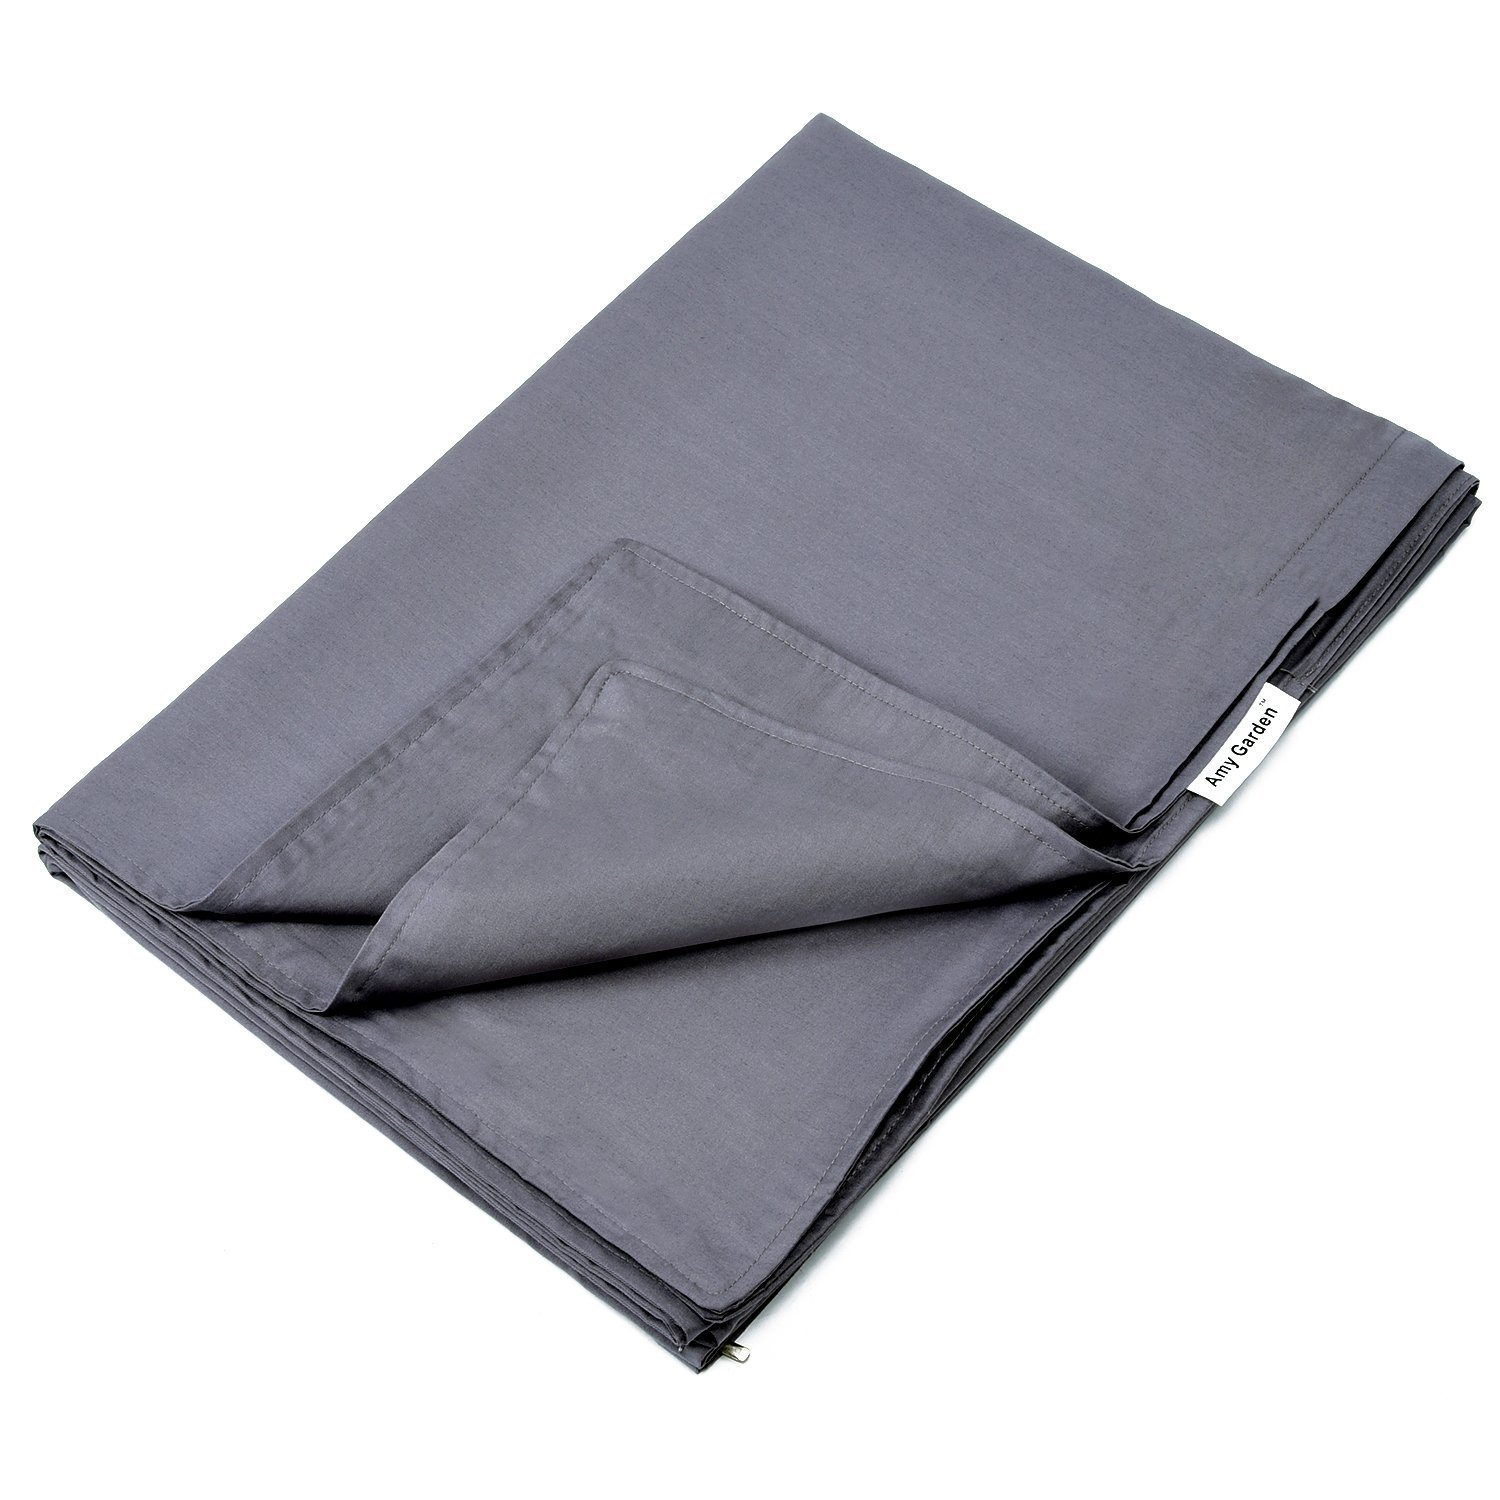 Amy Garden Weighted Blanket for Anxiety, ADHD, Autism, Insomnia or Stress - Premium Various Weighted Blankets for Great Sleep (36x48, 5 lbs for 40-50 lbs Kids, Grey) Amy-00003